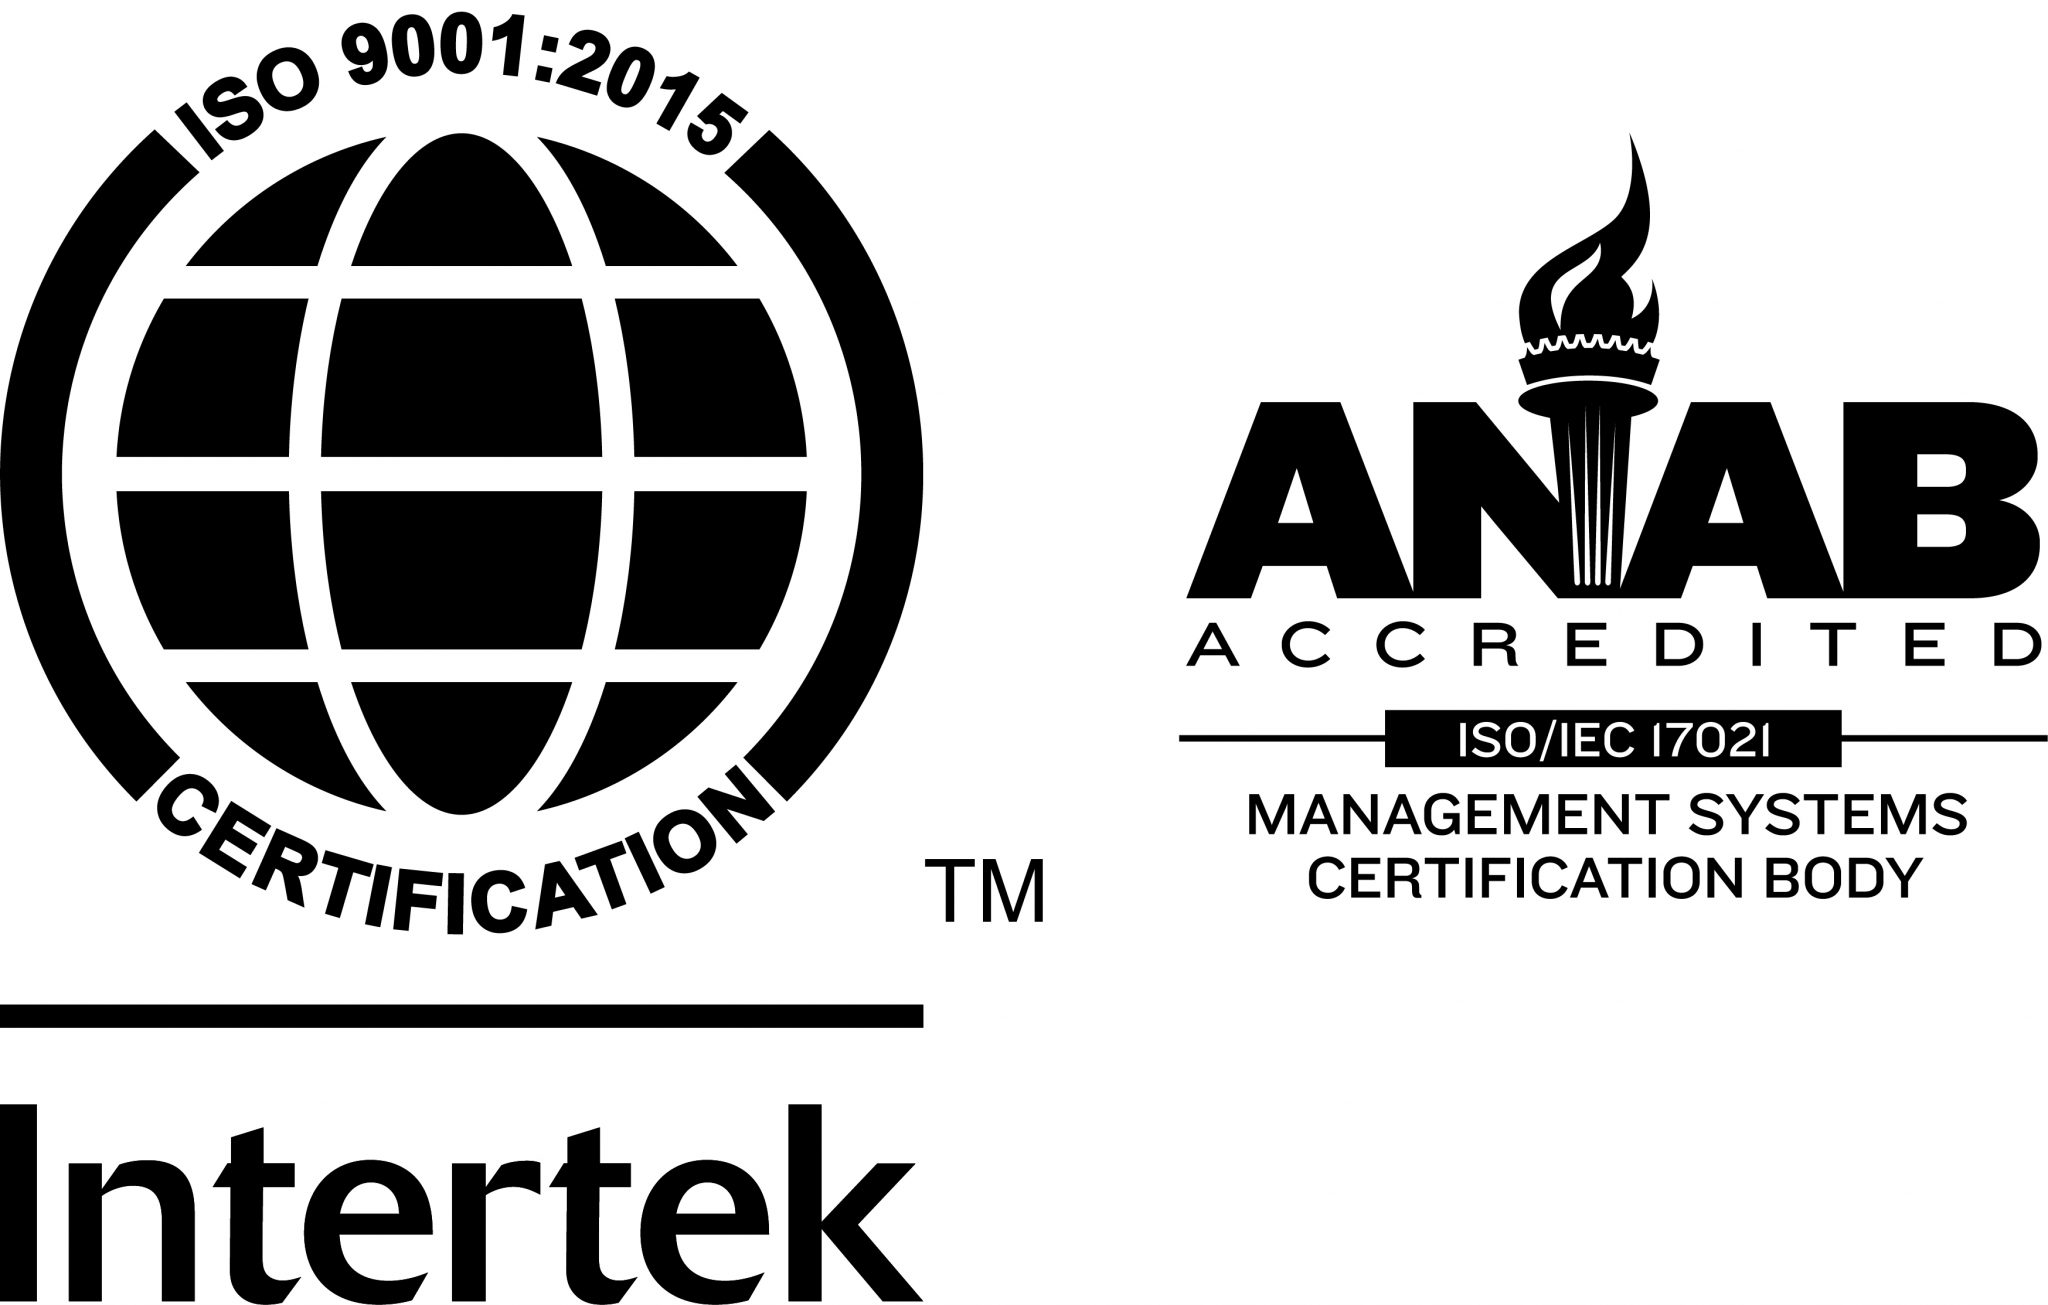 ISO 9001:2015 Certification Proves That Customer